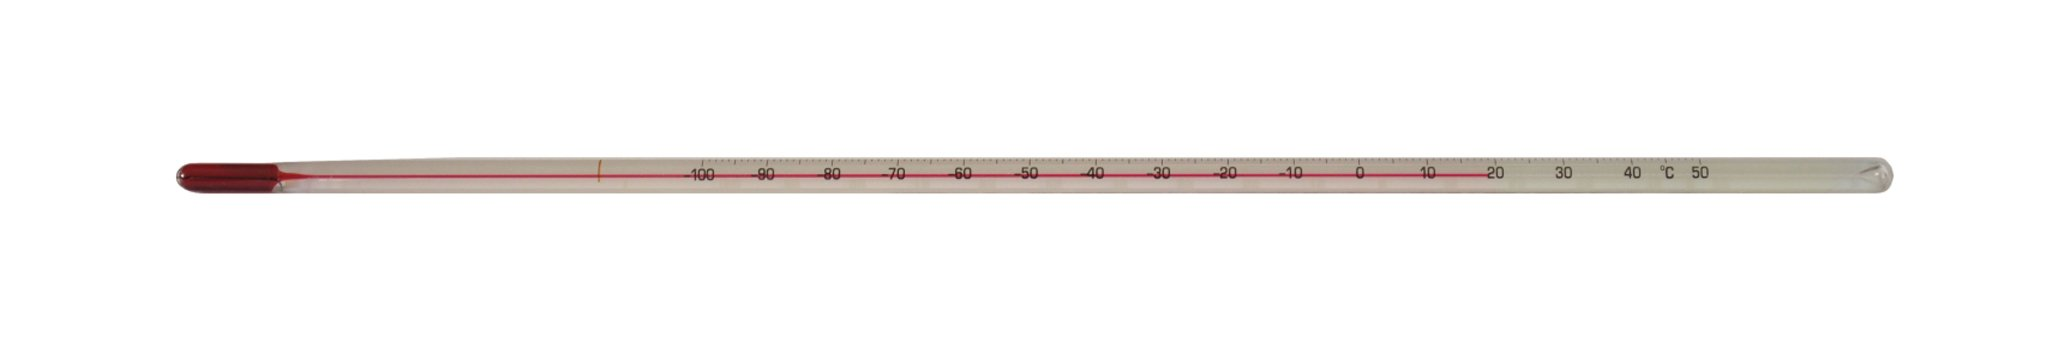 Thermco ACC610S SAMA Precision Red Spirit Filled Laboratory Thermometer, 0 to 230°F Range, 2°C Division, Total Immersion, 305mm Length